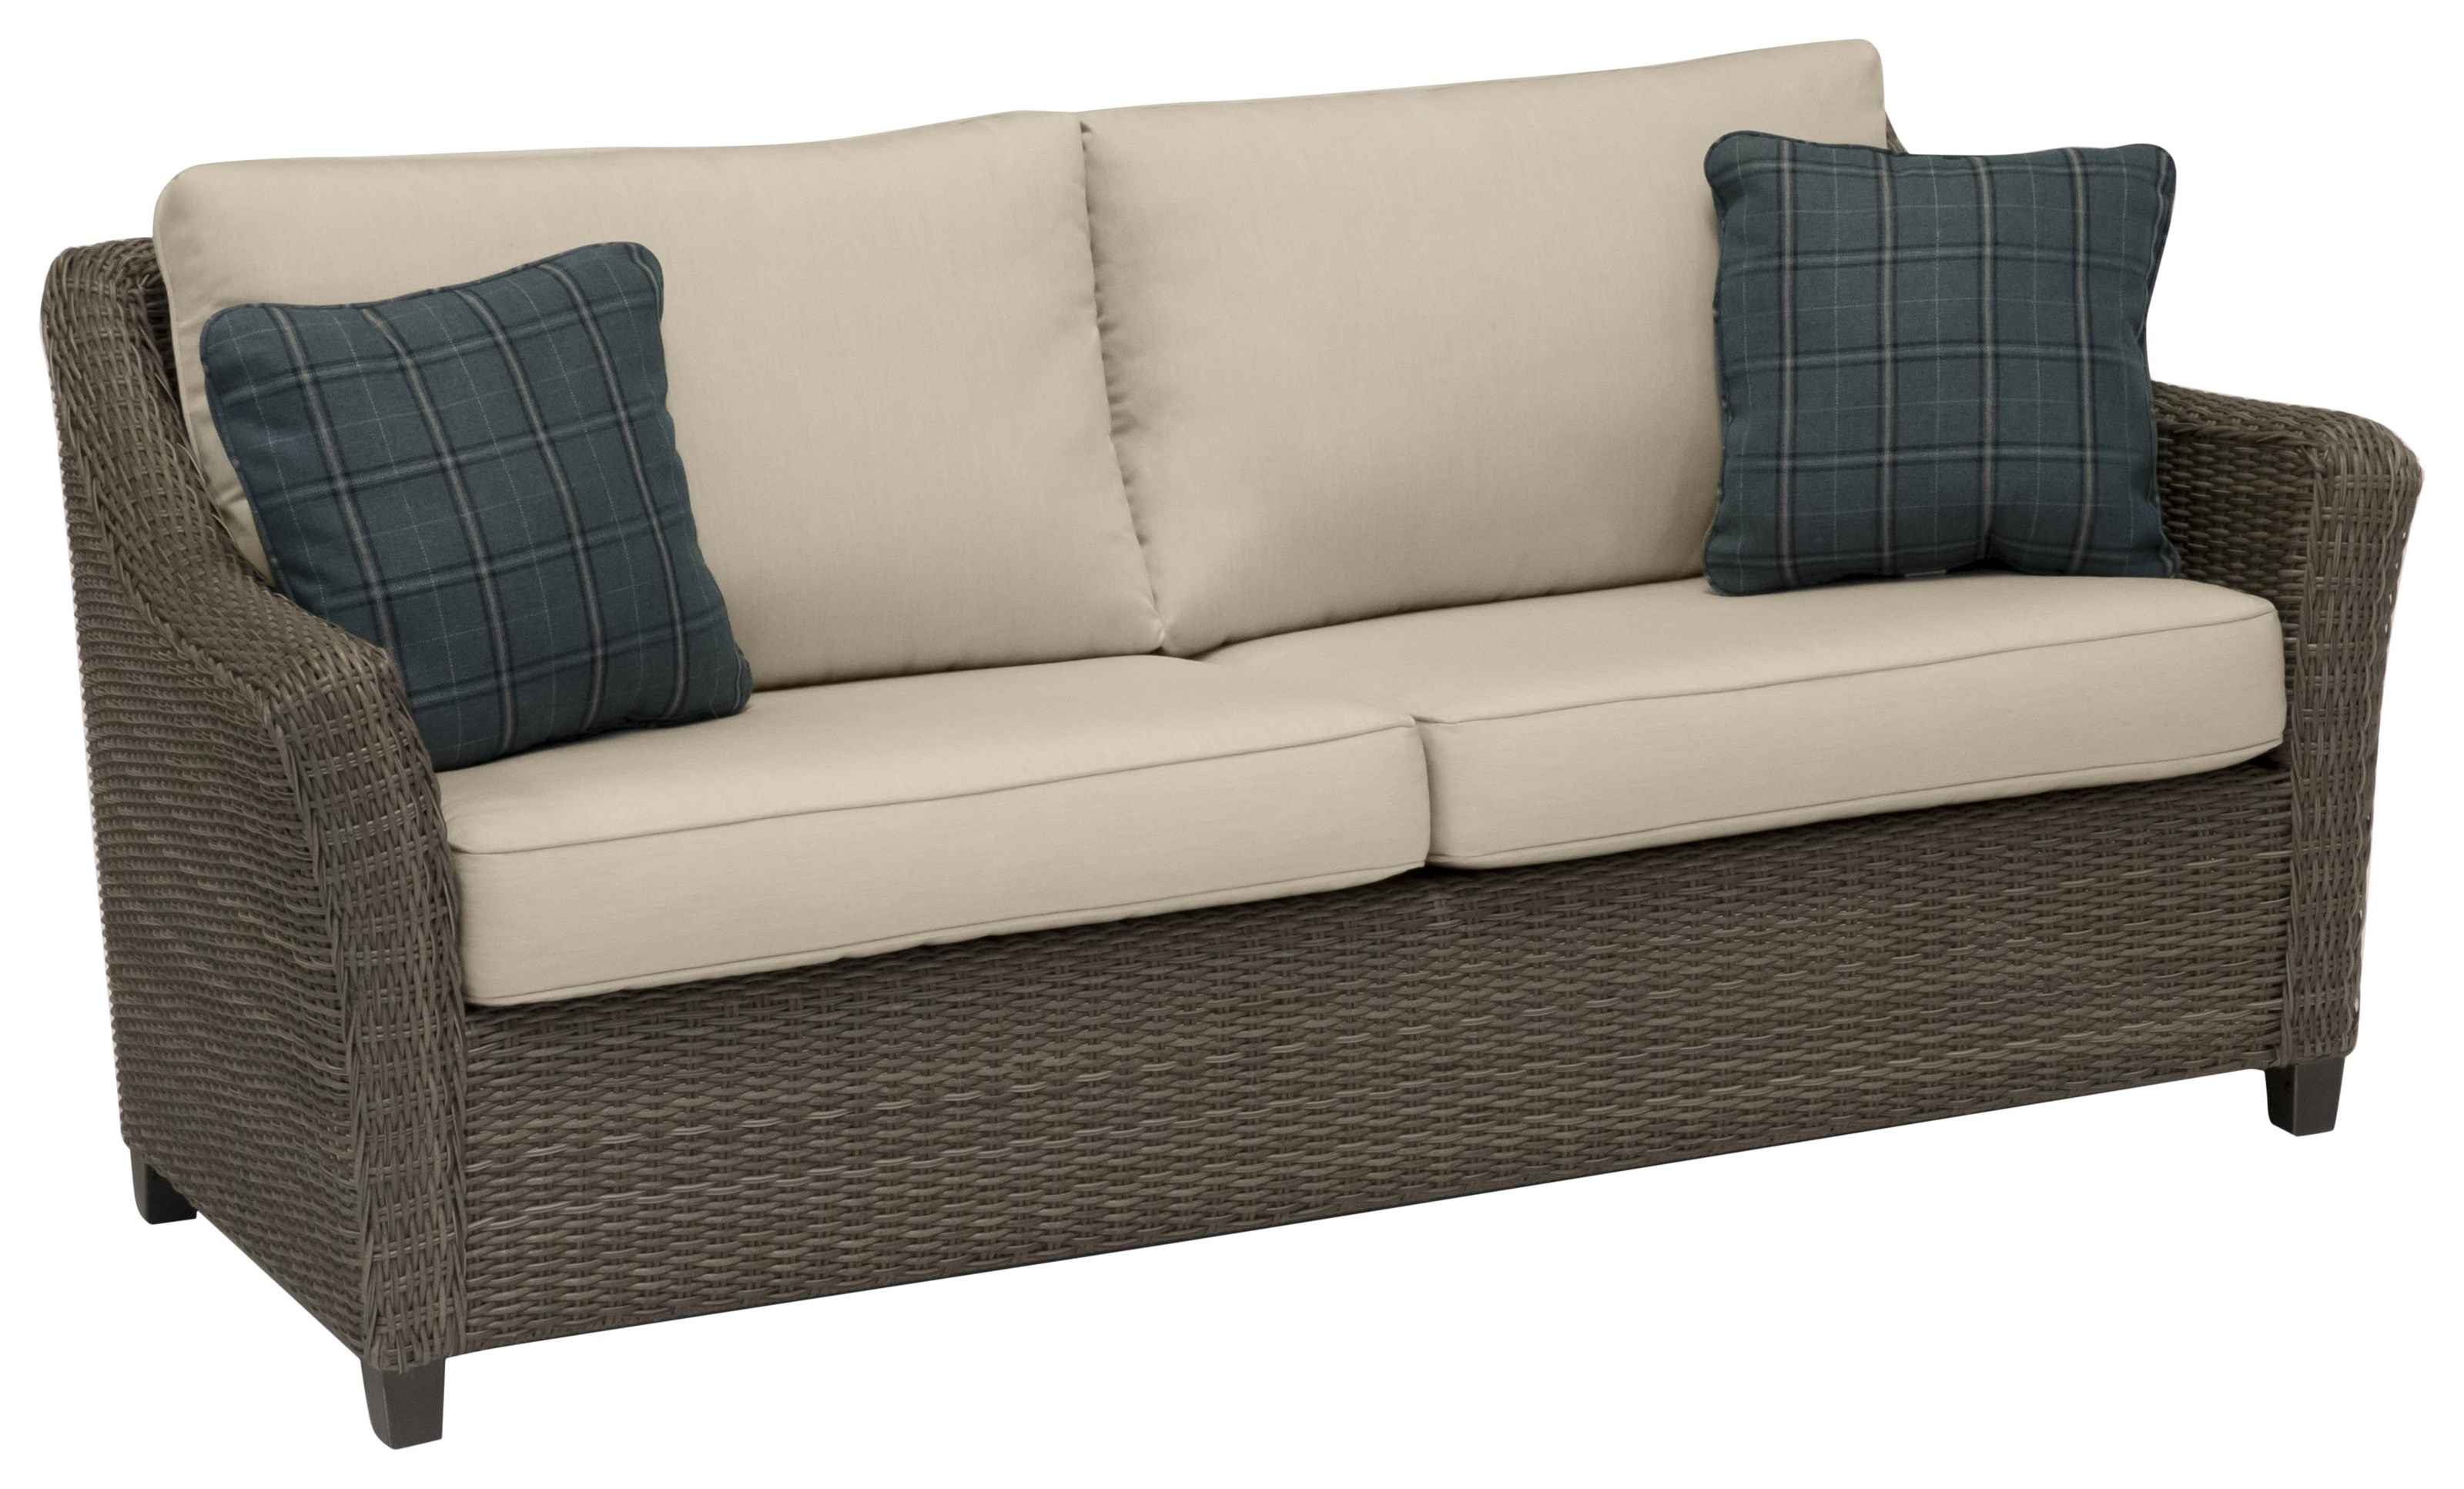 Oak Grove Sofa by Apricity Outdoor at Johnny Janosik